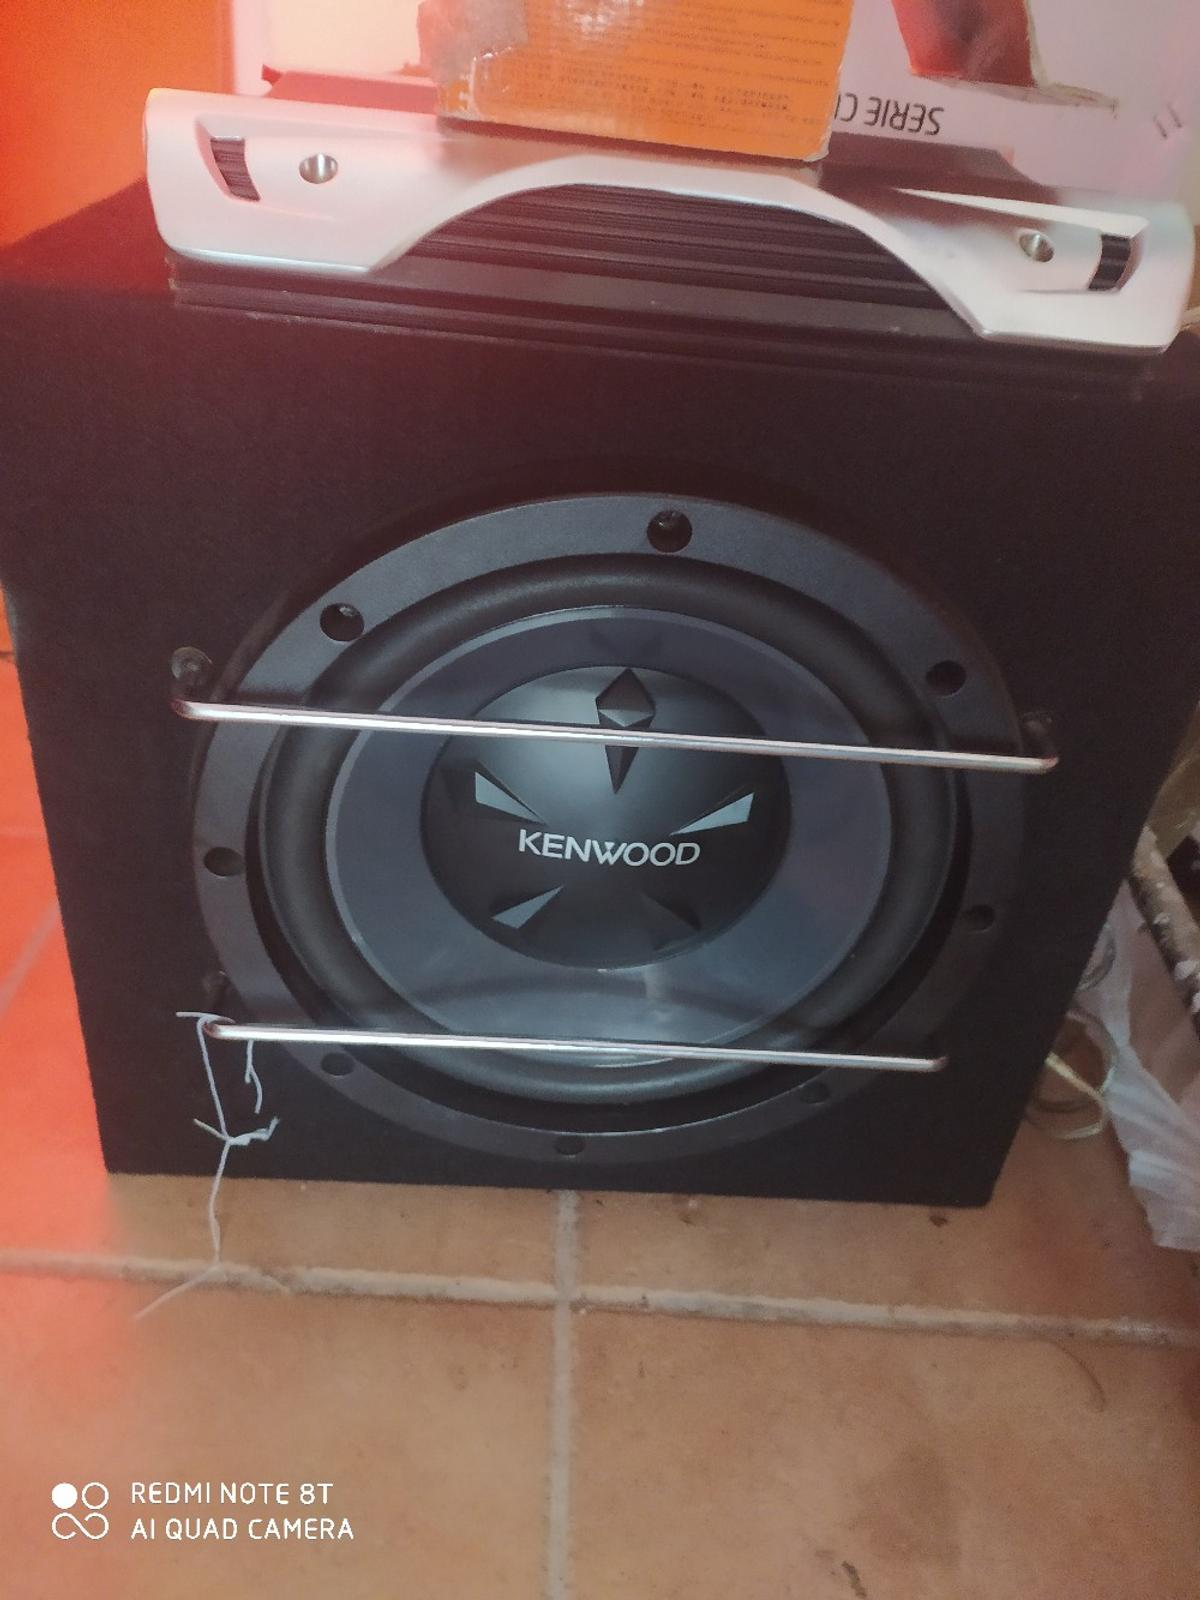 Subwoofer, stereo Kenwood e amplificatore in 01037 Ronciglione for €300.00  for sale